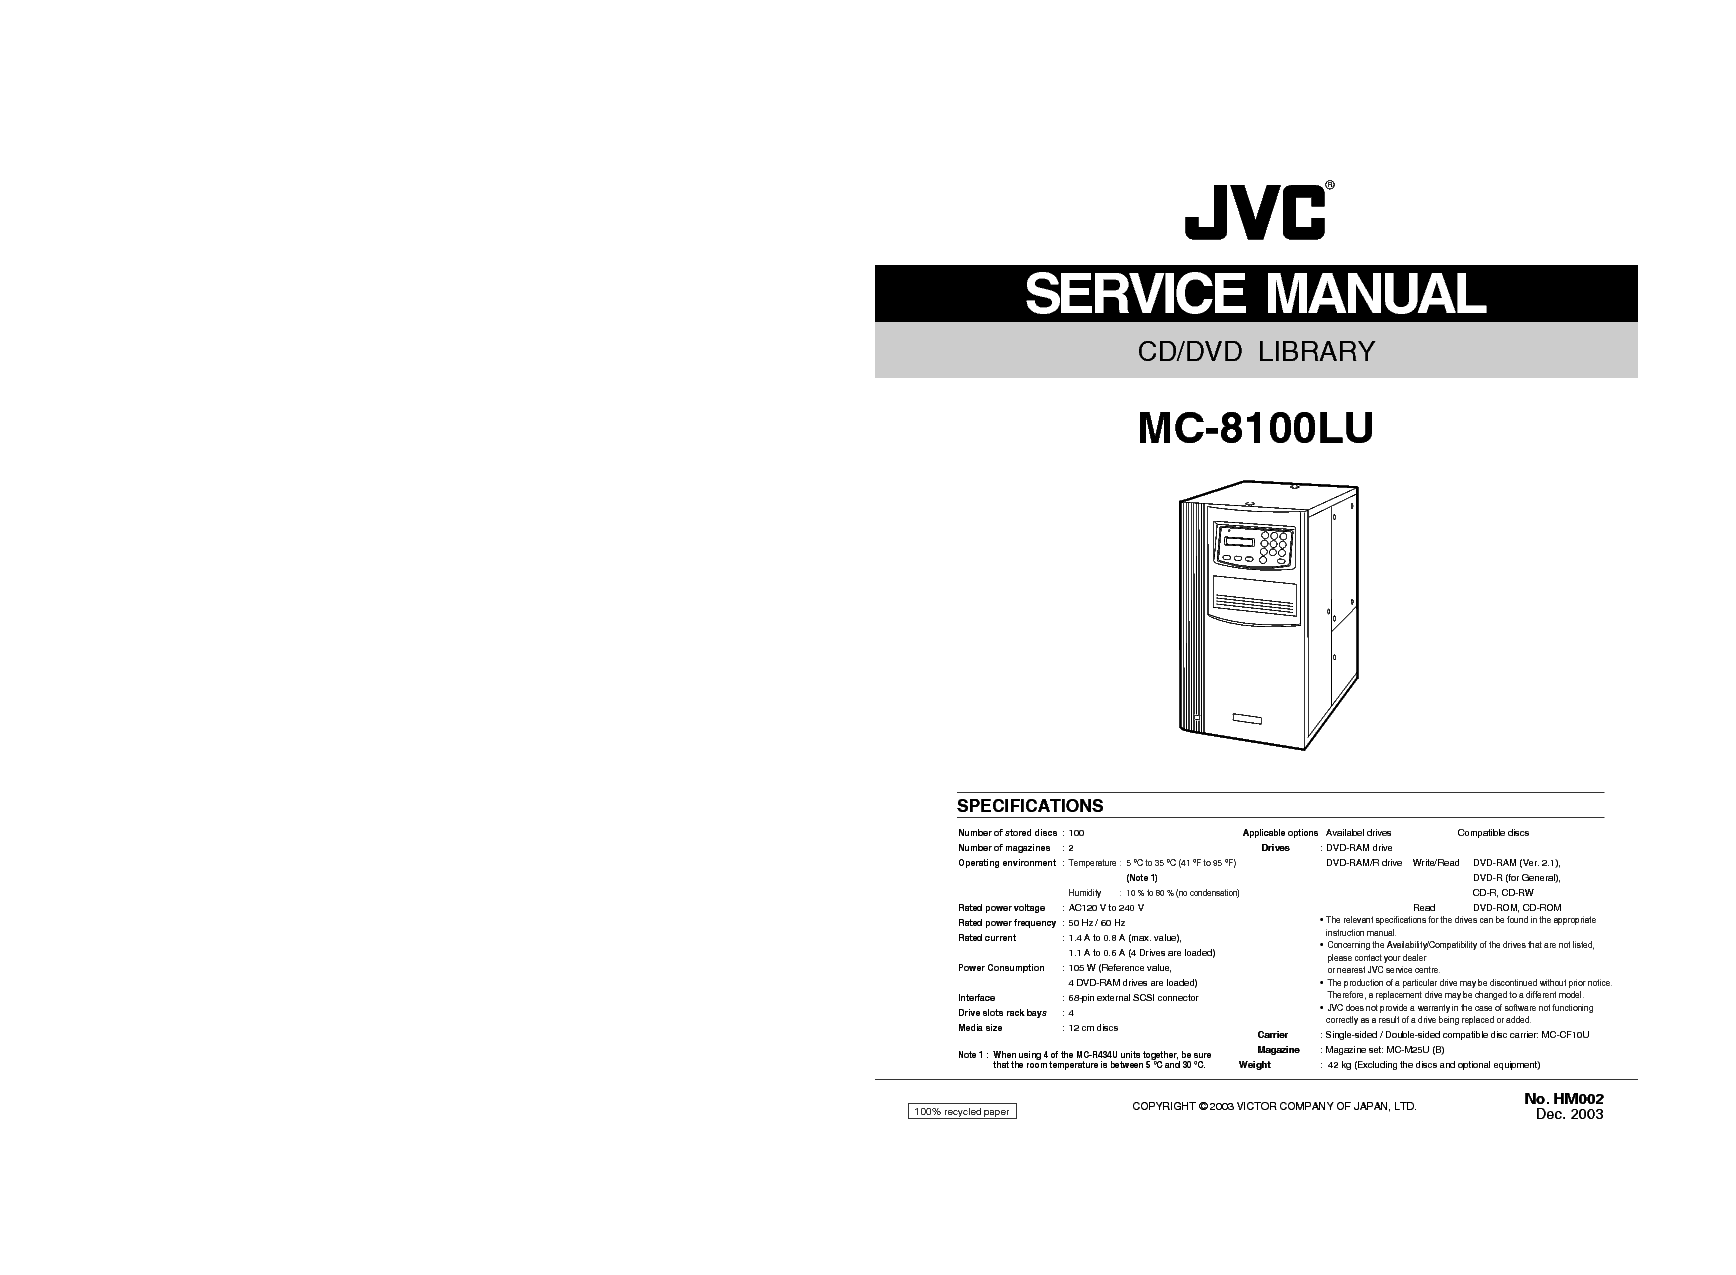 JVC MC-8100LU CD-DVD LIBRARY SM Service Manual download